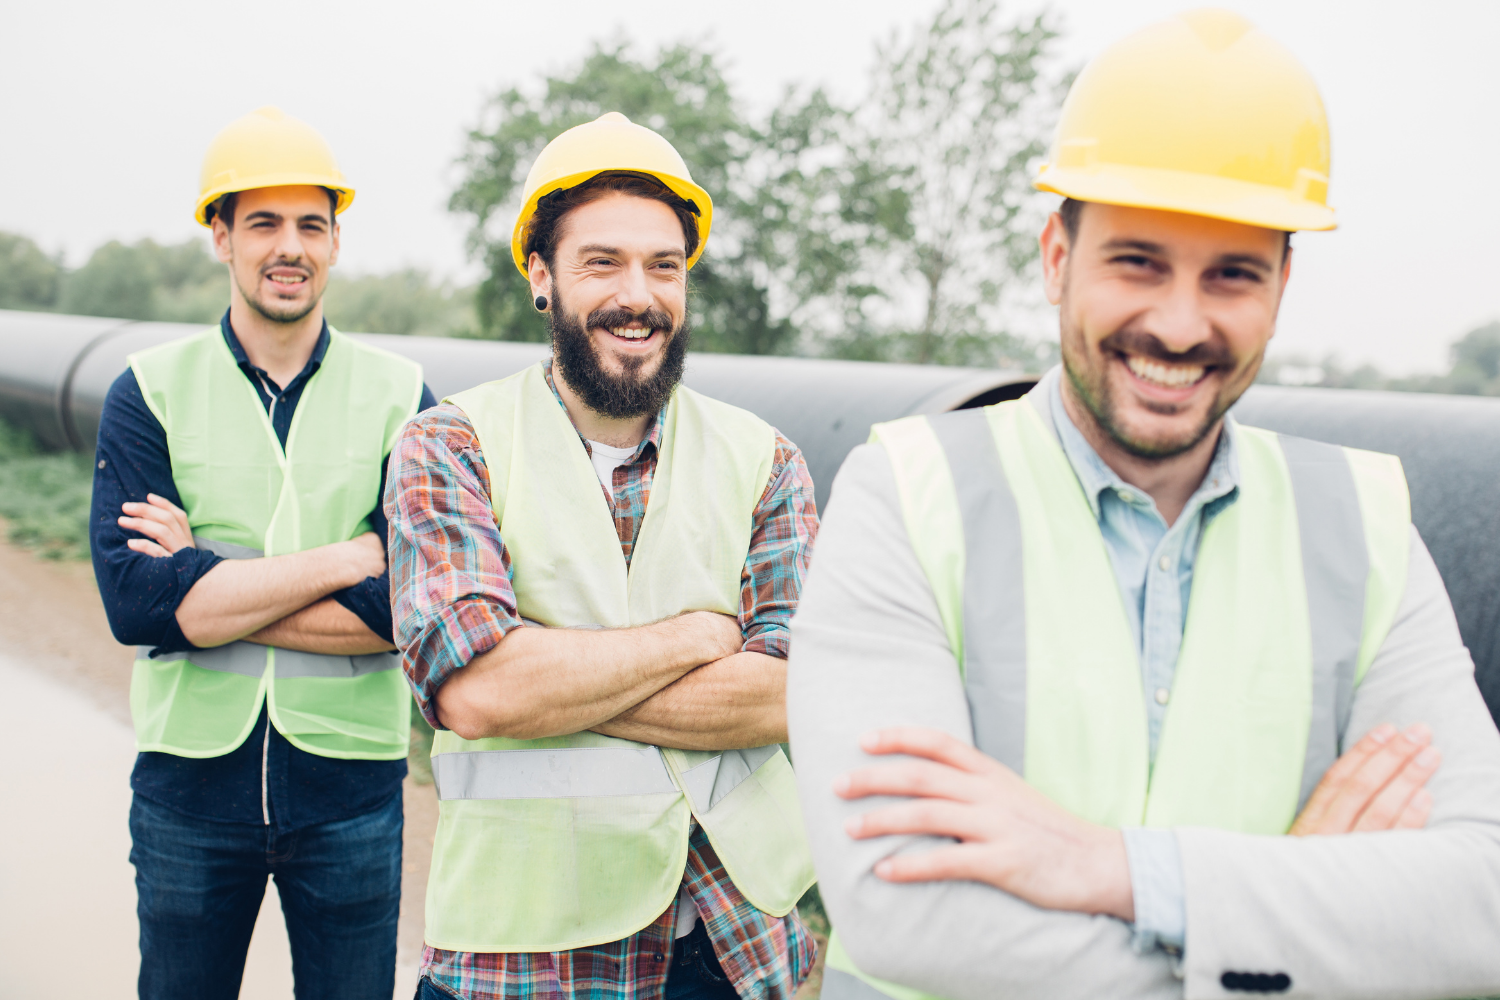 Photo of 3 happy men. They look to be part of a construction team with yellow hard hats and vests on